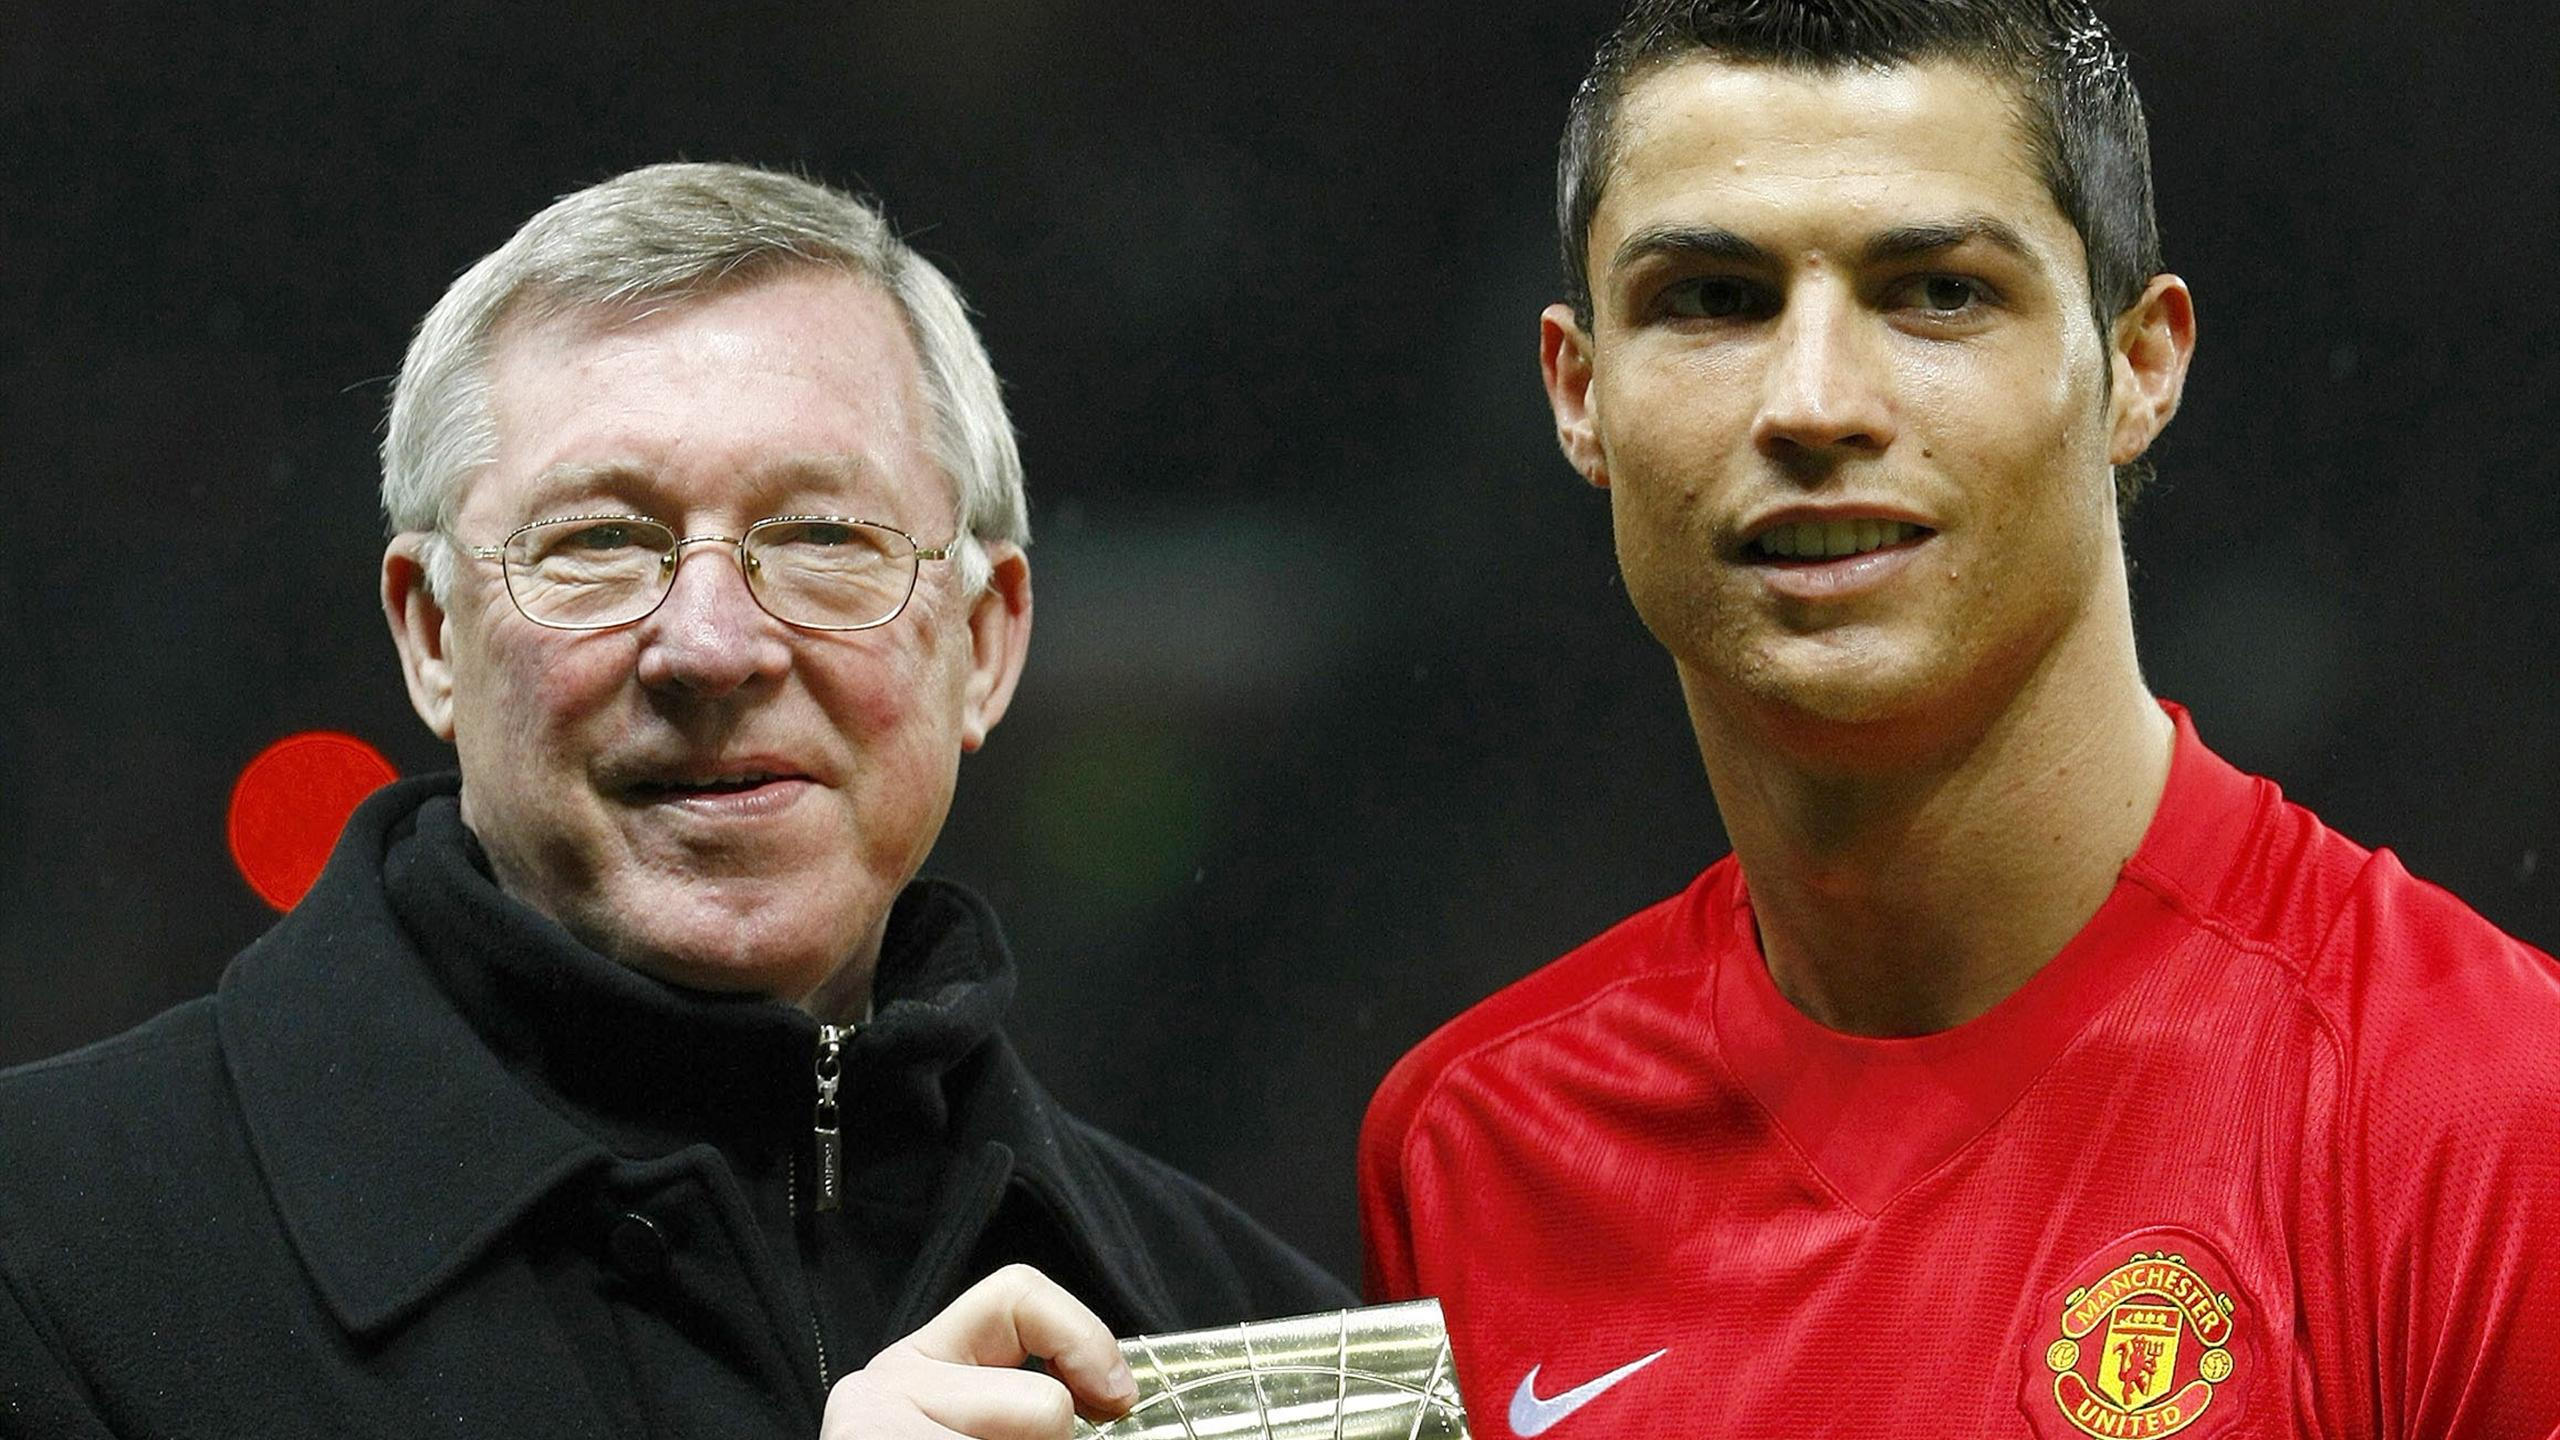 Sir Alex Ferguson and Cristiano Ronaldo receive awards while at Manchester United